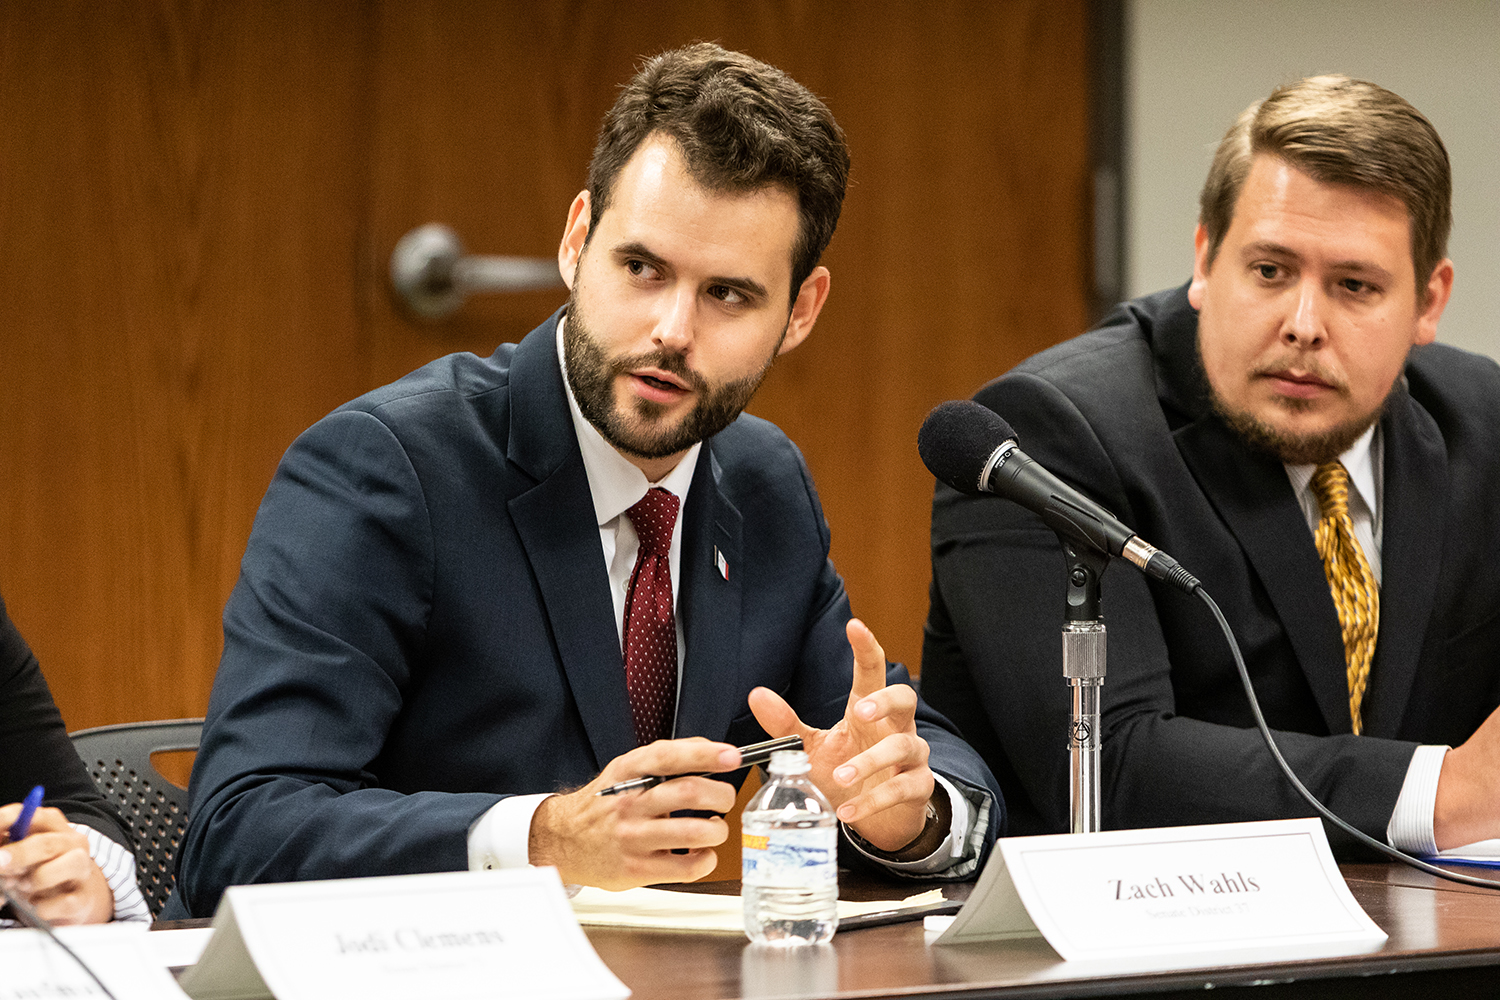 Zack Wahls, the Democratic candidate for Iowa State Senate District 37, participates in a public forum at the Coralville Public Library on Monday, Sept. 10, 2018.